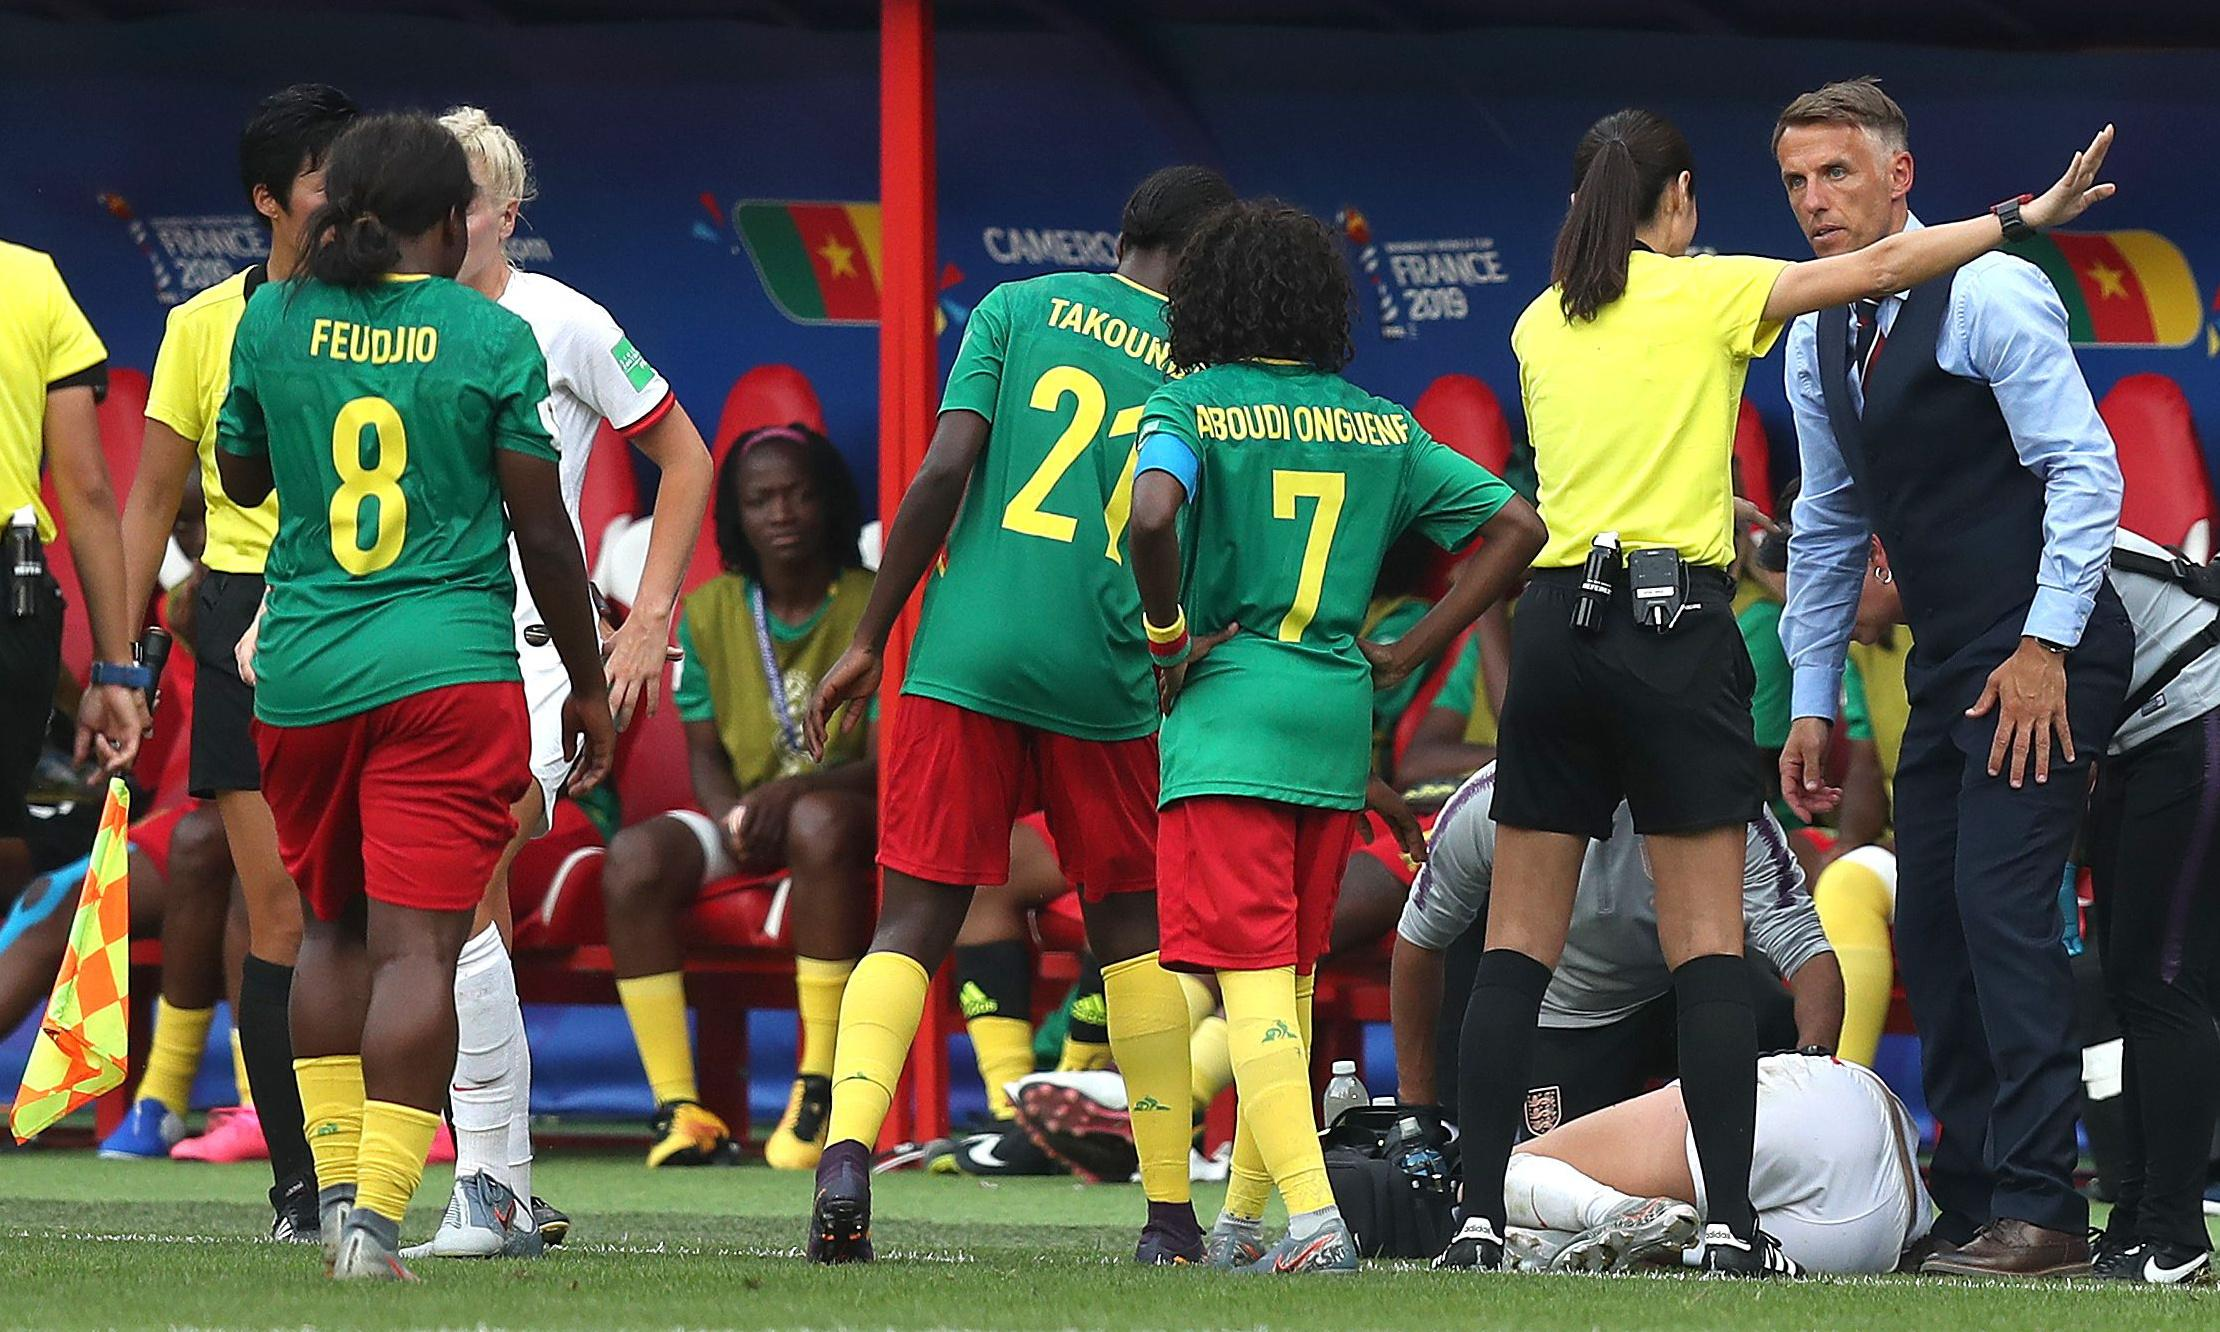 England's Phil Neville accuses Cameroon of 'shaming football'